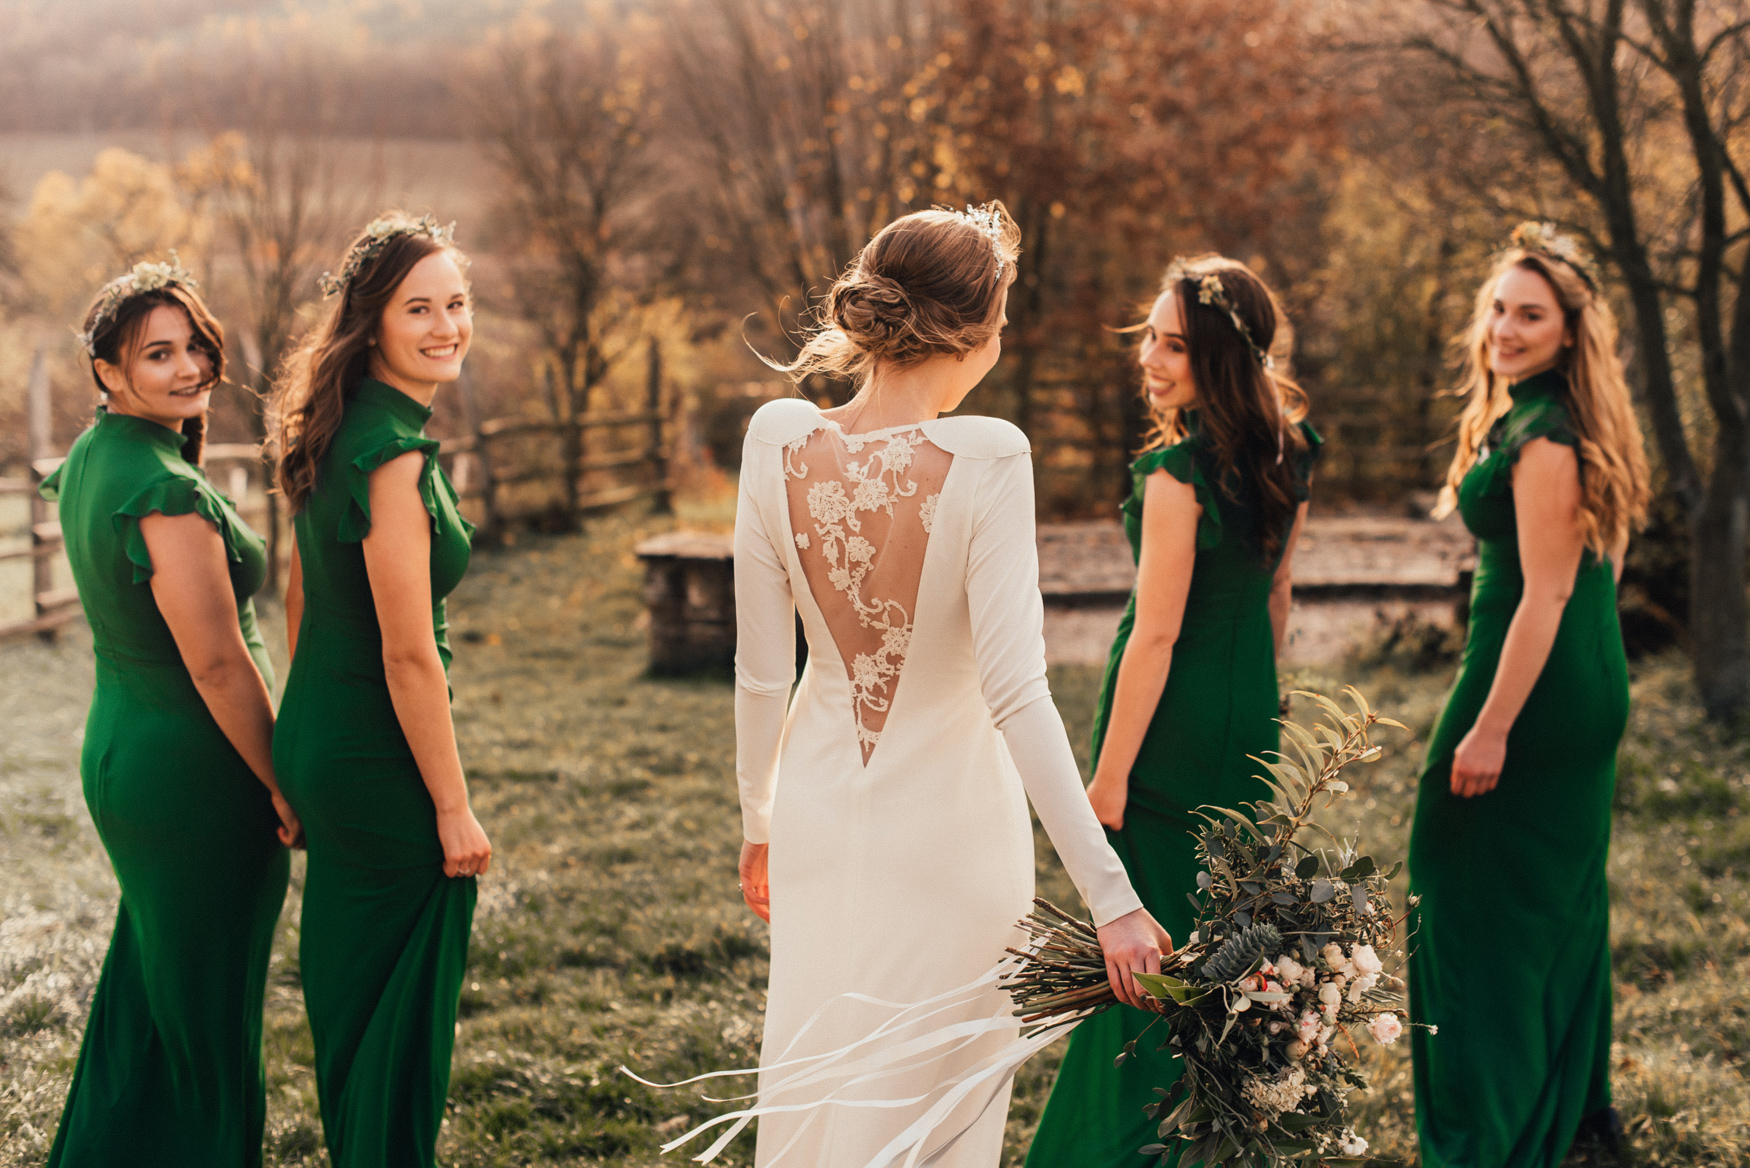 bestof2017_089 bridesmaids in green dresses.jpg